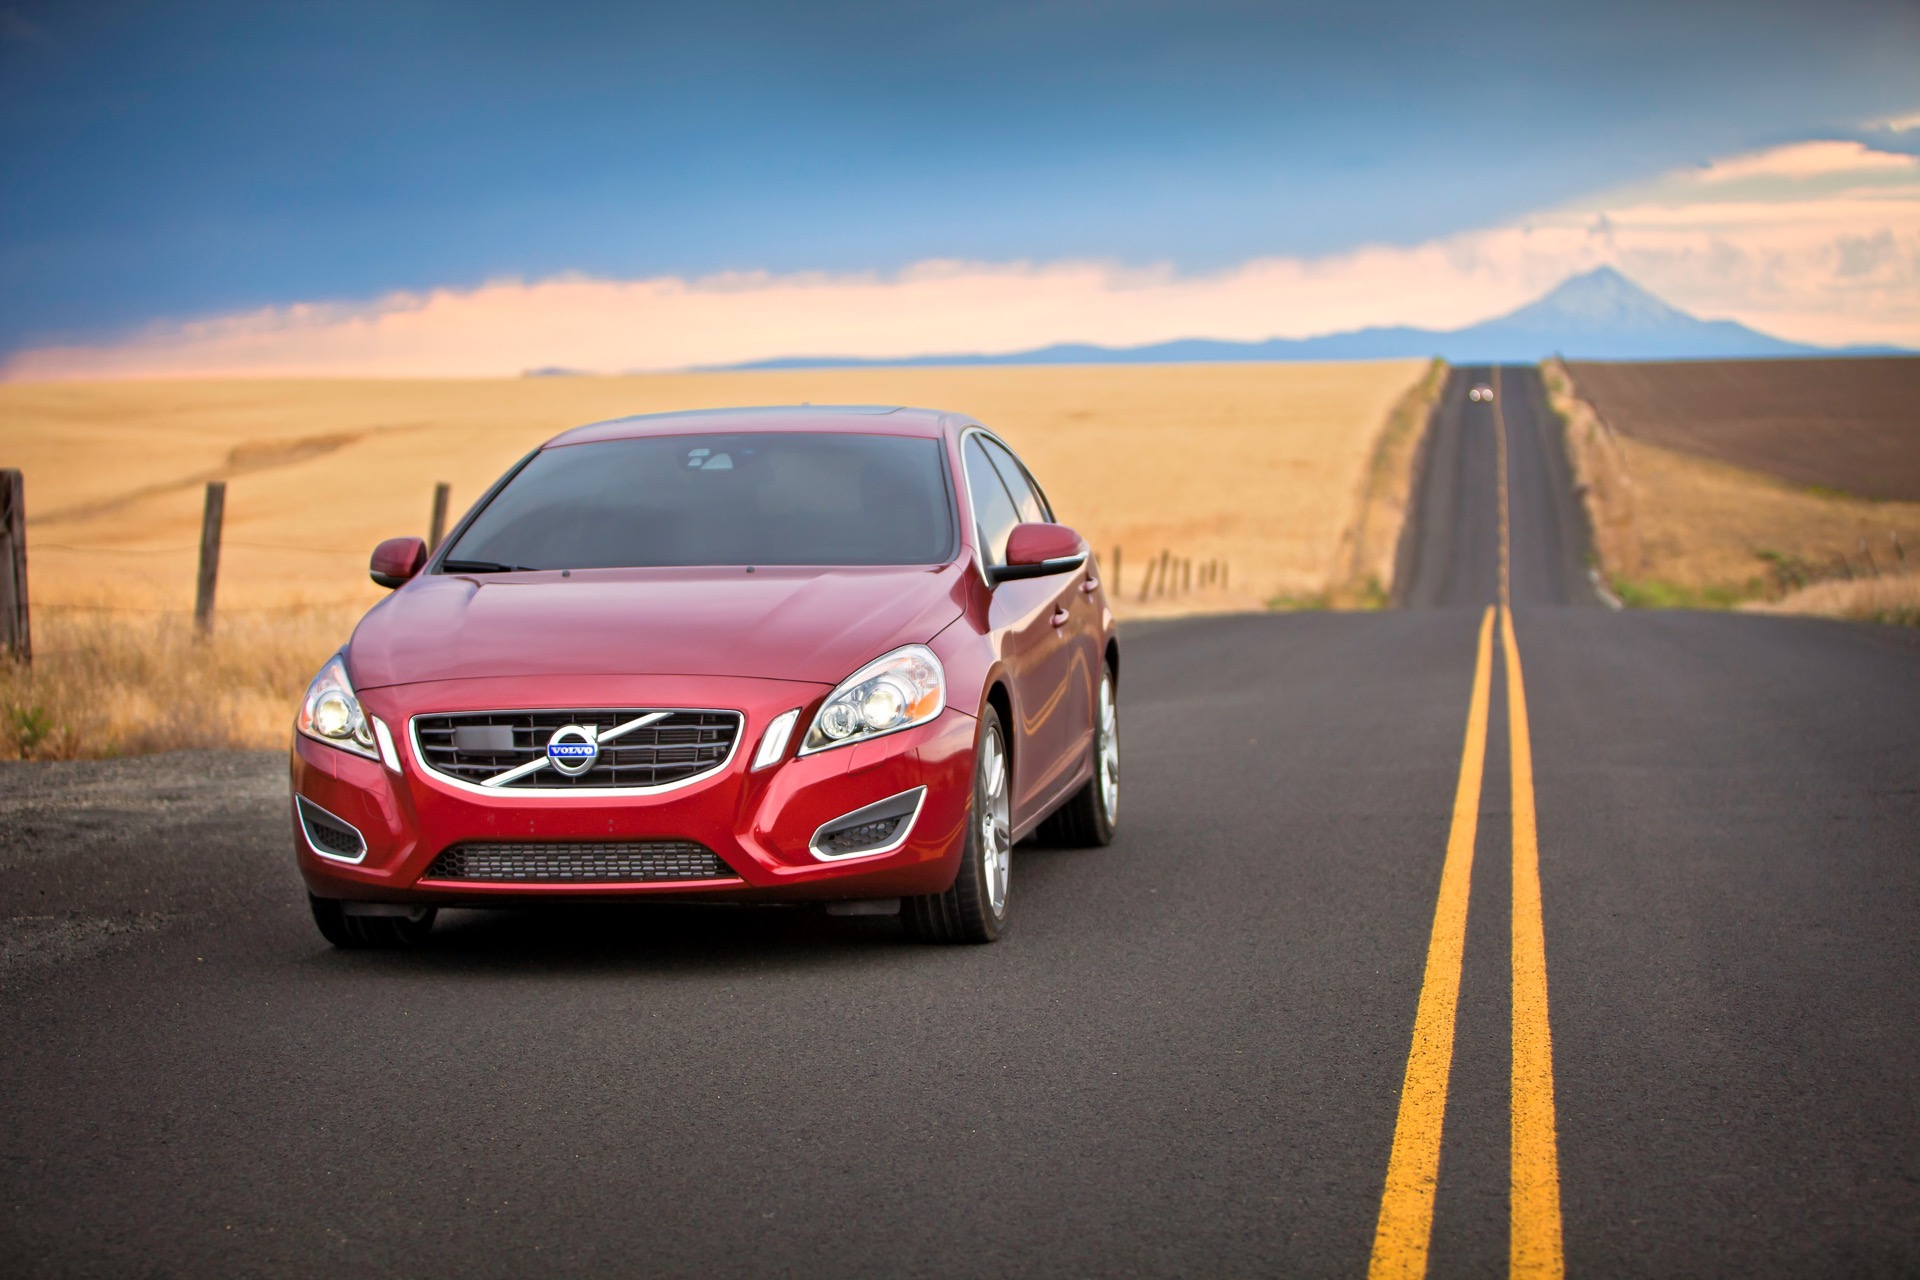 S60 T6 Awd Driving Action11 -  Volvo